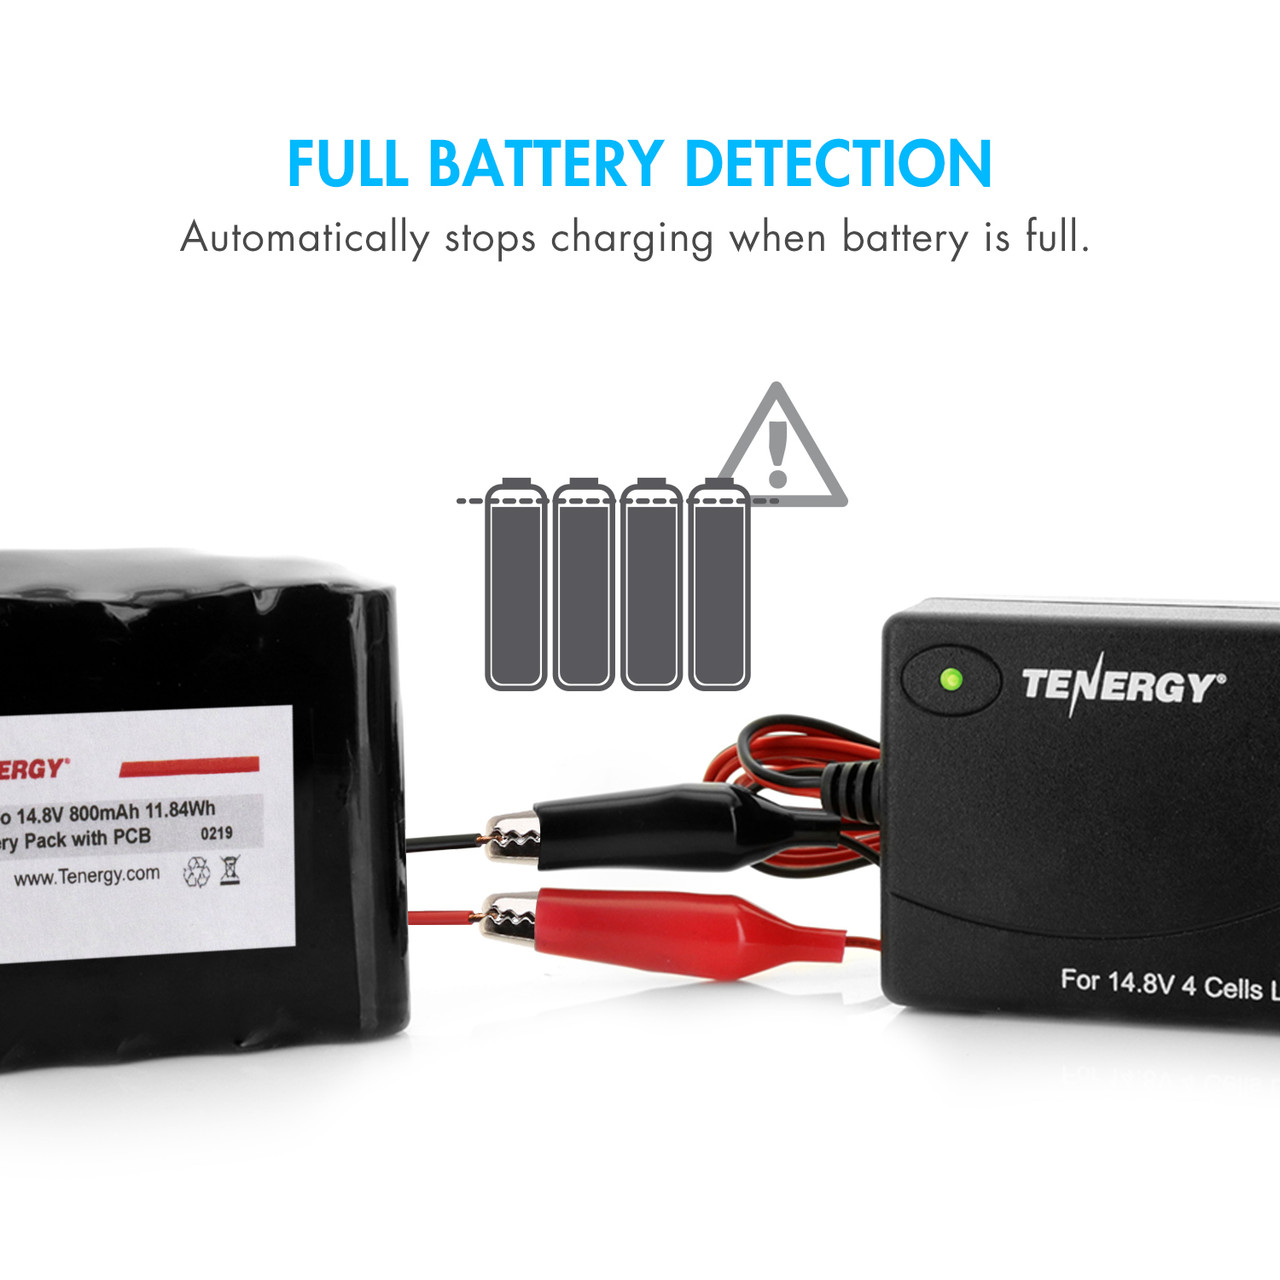 Tenergy TLP3000 1.5A Charger for Li-Ion / Li-polymer battery Pack (14.8V 4 cells) - UL approved